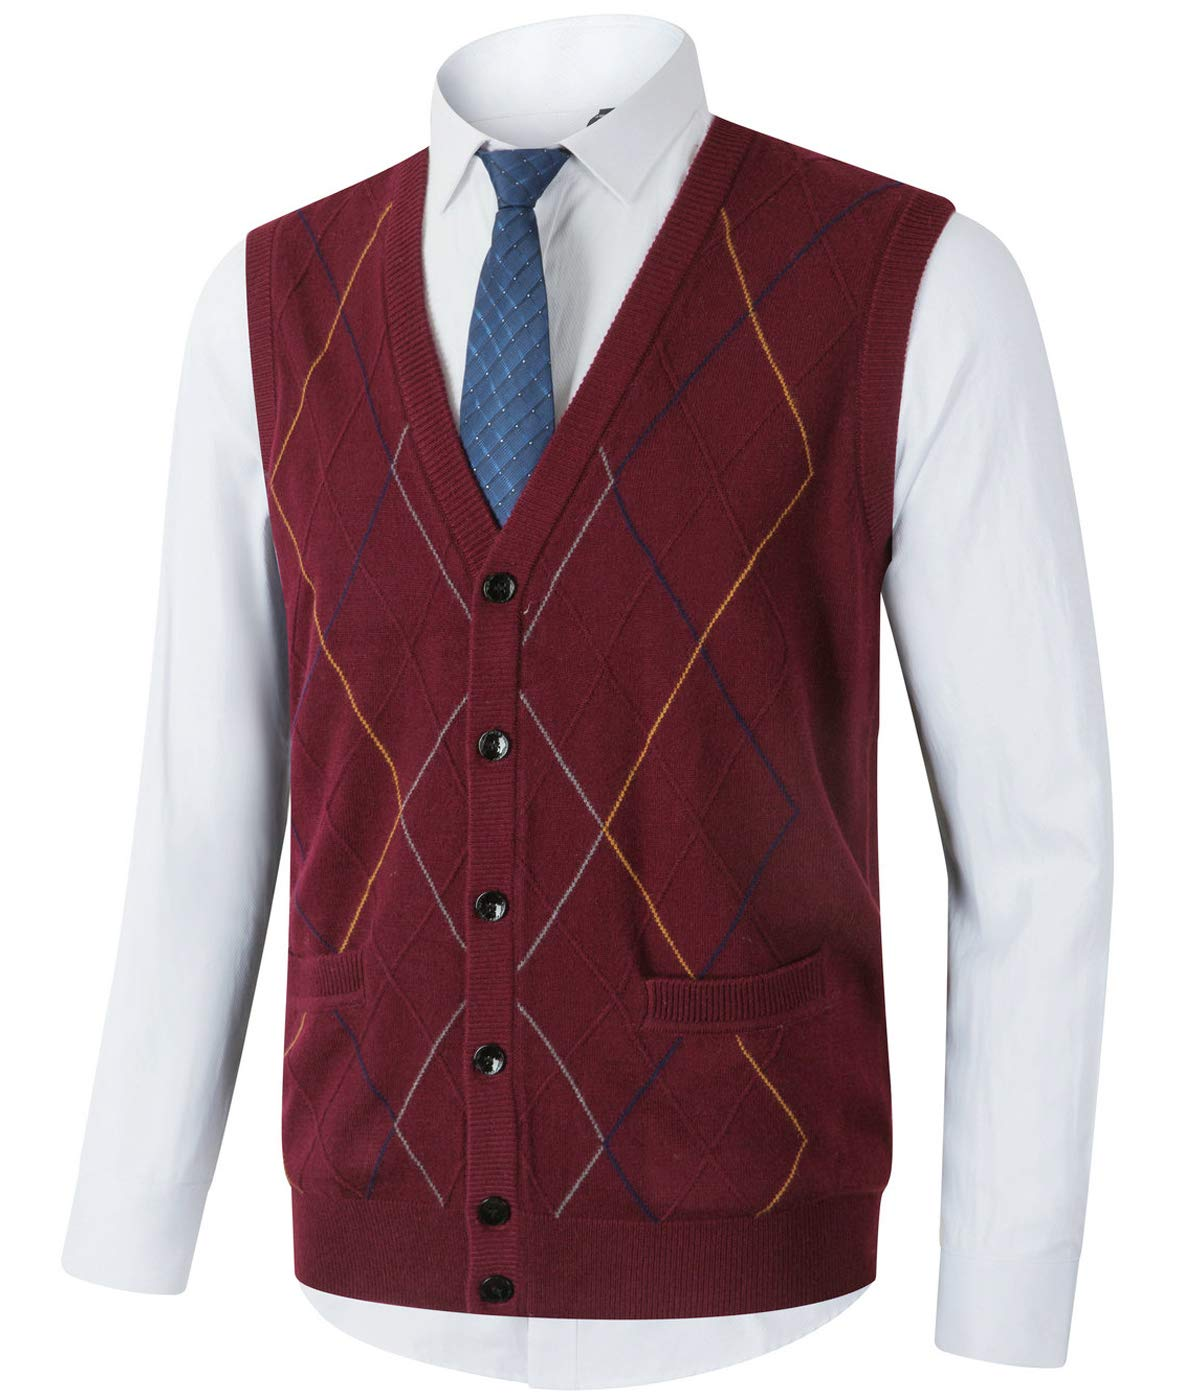 Homovater Mens Casual V-Neck Knitted Vest Sleeveless Sweaters Cardigan Button Down Knitwear Tank Top with Ribbing Edge Argyle Burgundy, Small by Homovater